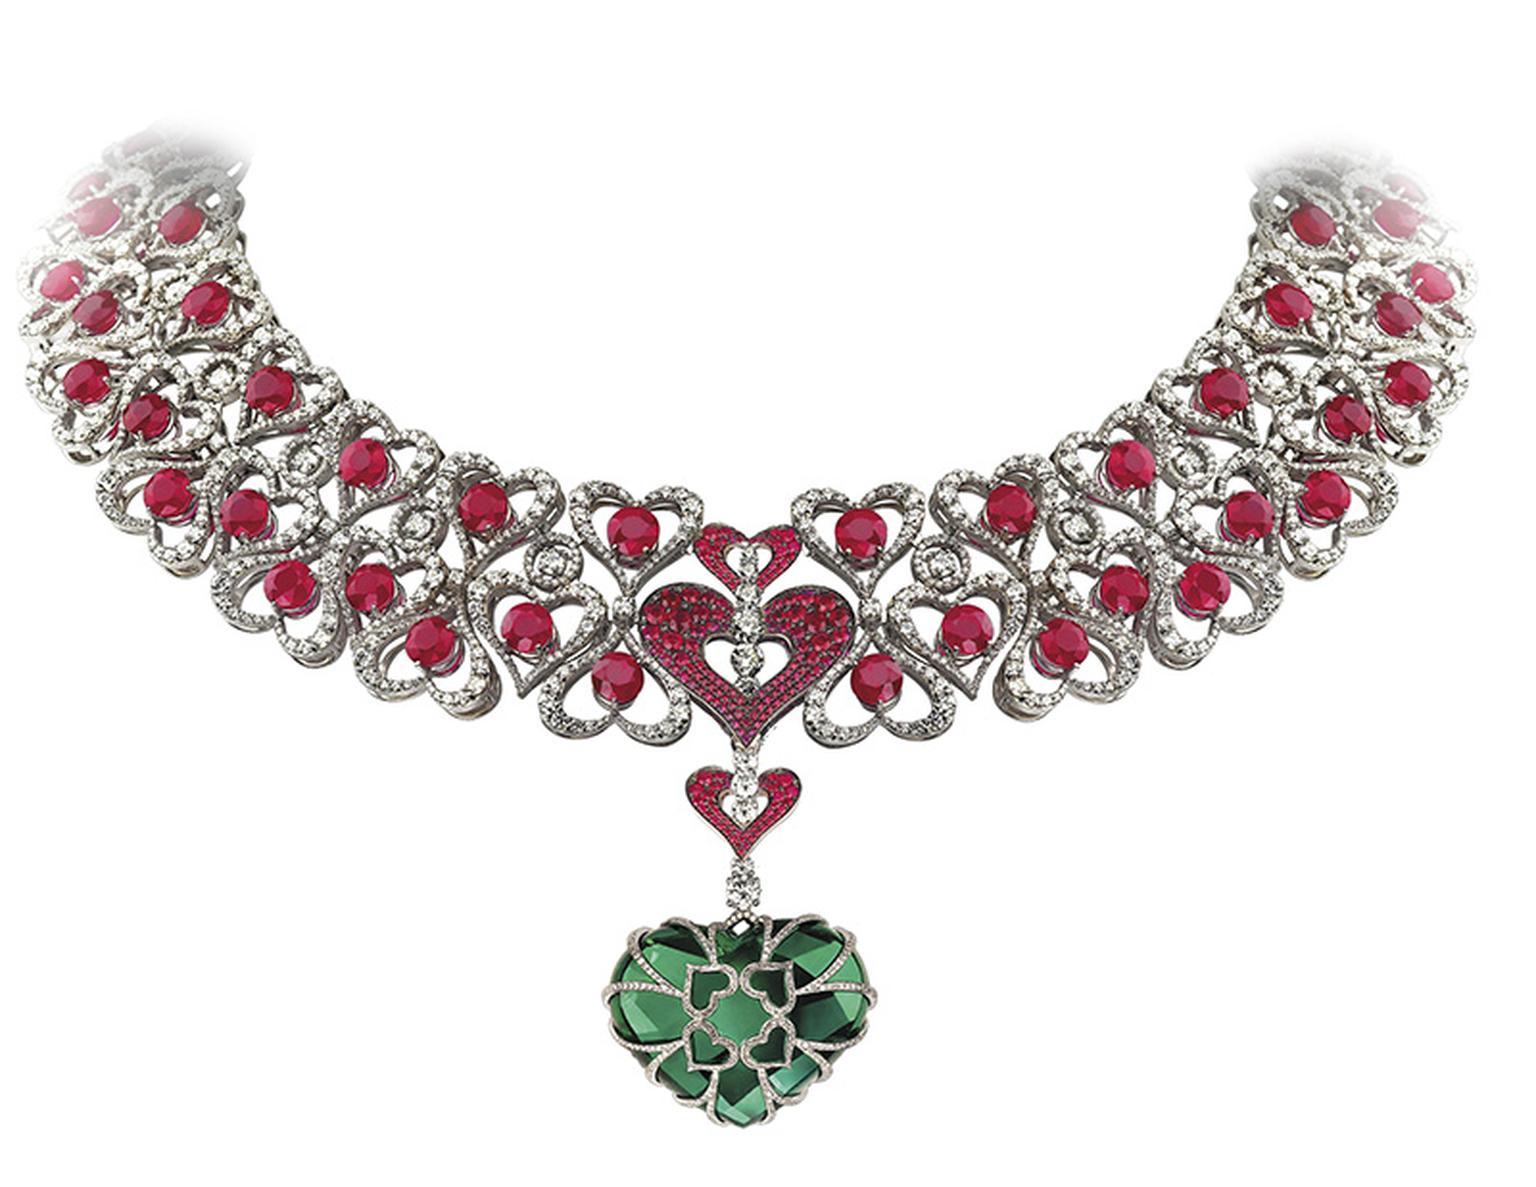 01-AVAKIAN-Heart-Shaped-Columbian-Emerald-Necklace-1.jpg